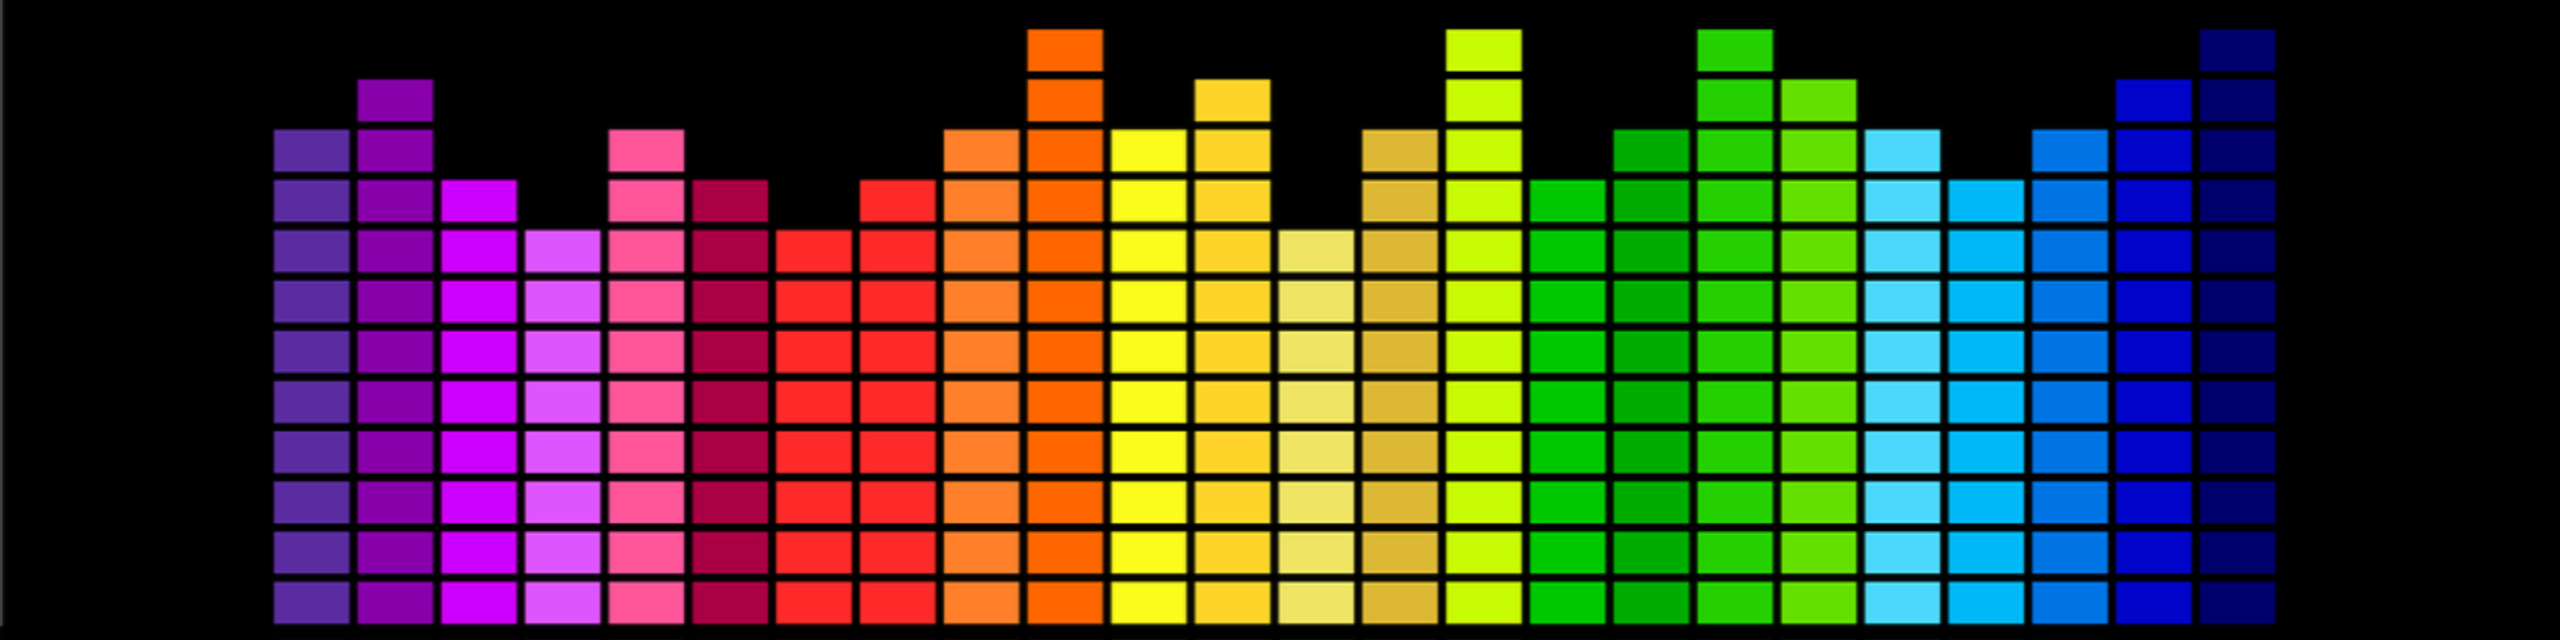 rainbow graphic equaliser illustration